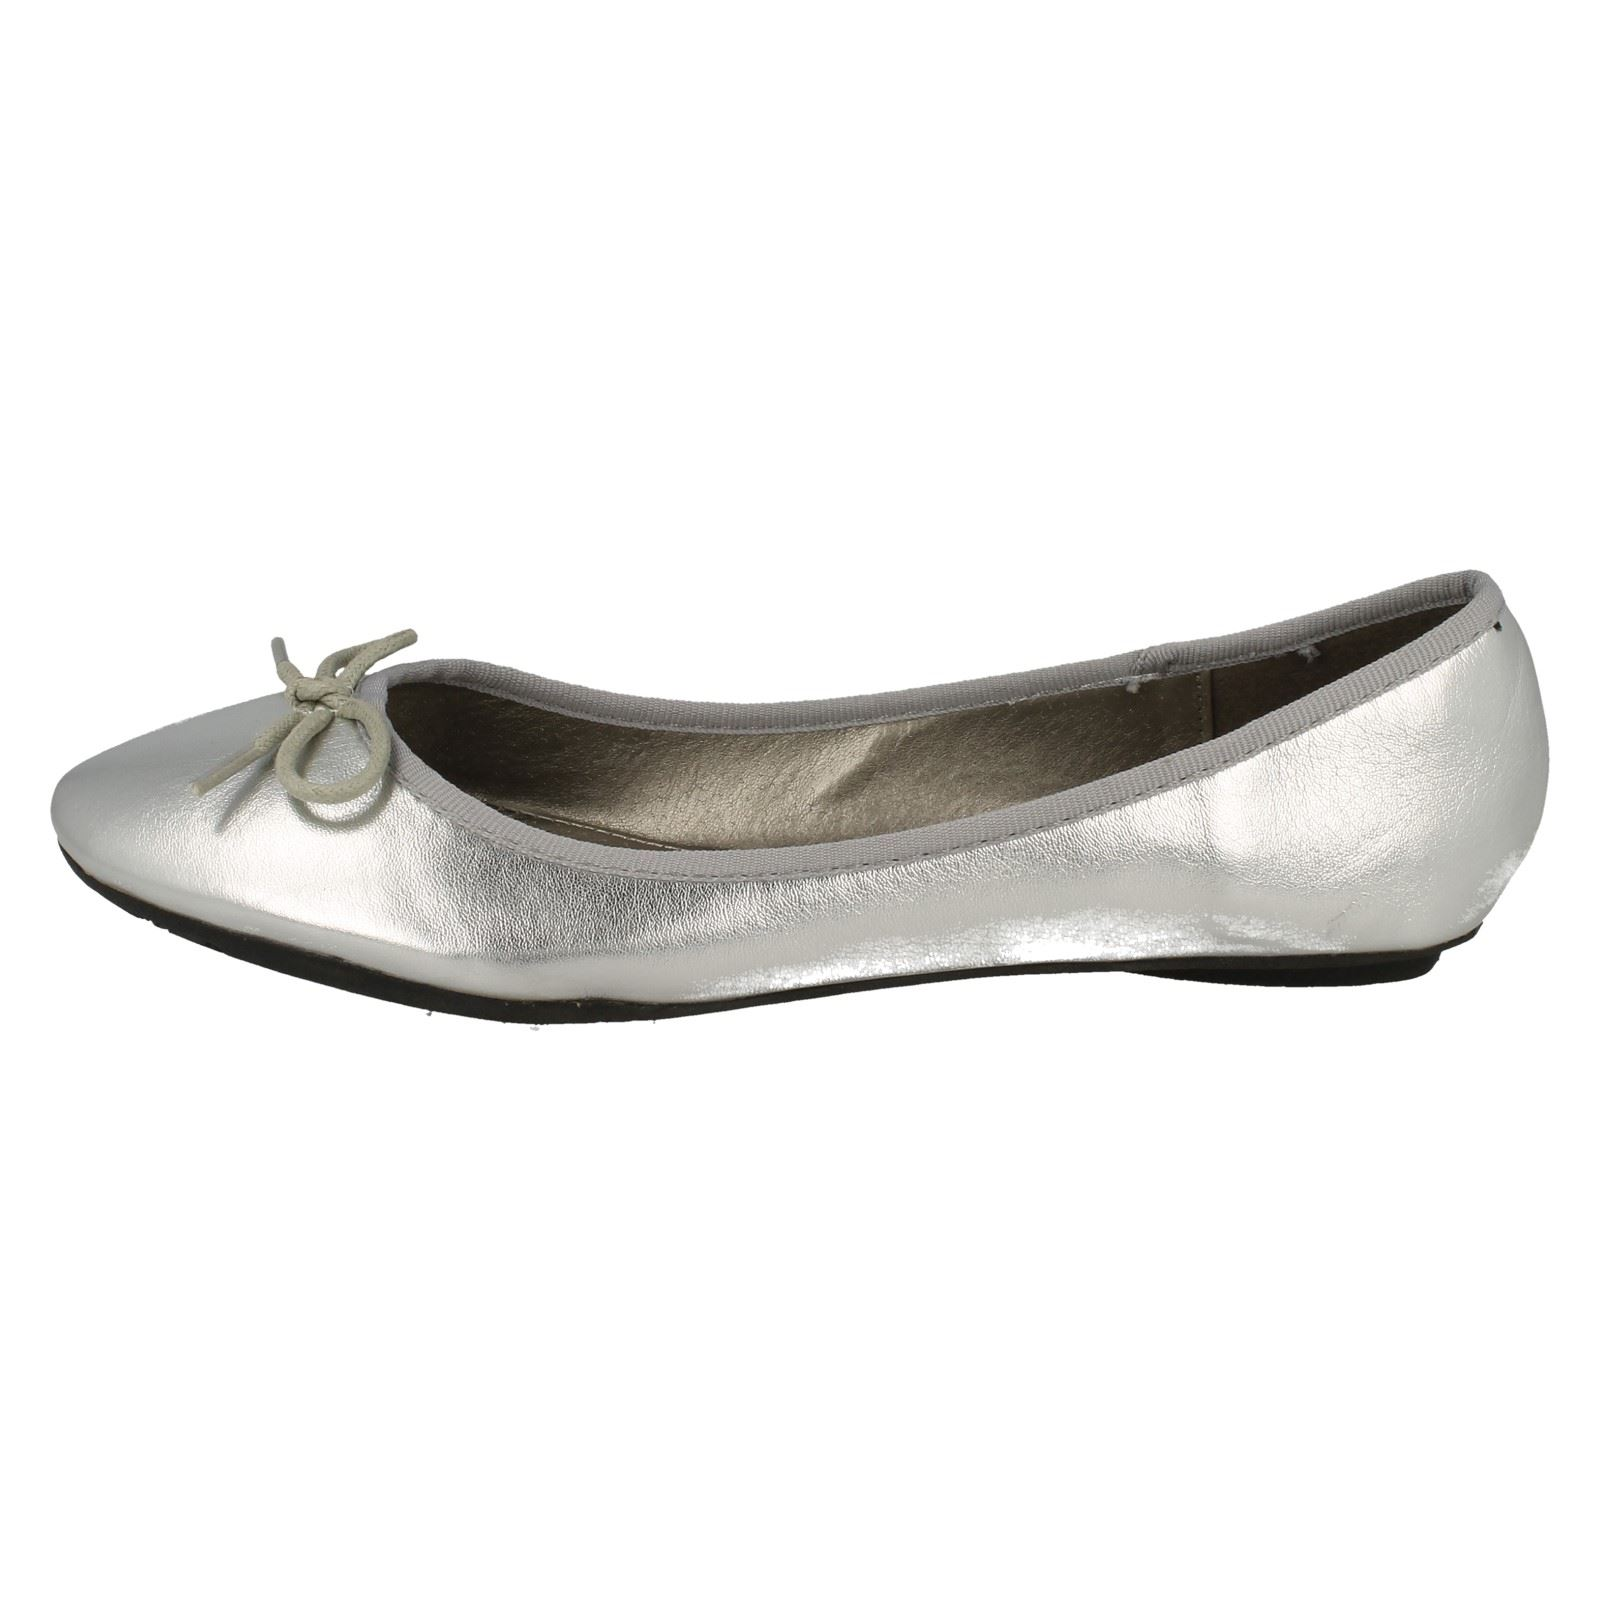 Ladies Spot On Casual Slip On Flat Ballet Shoes